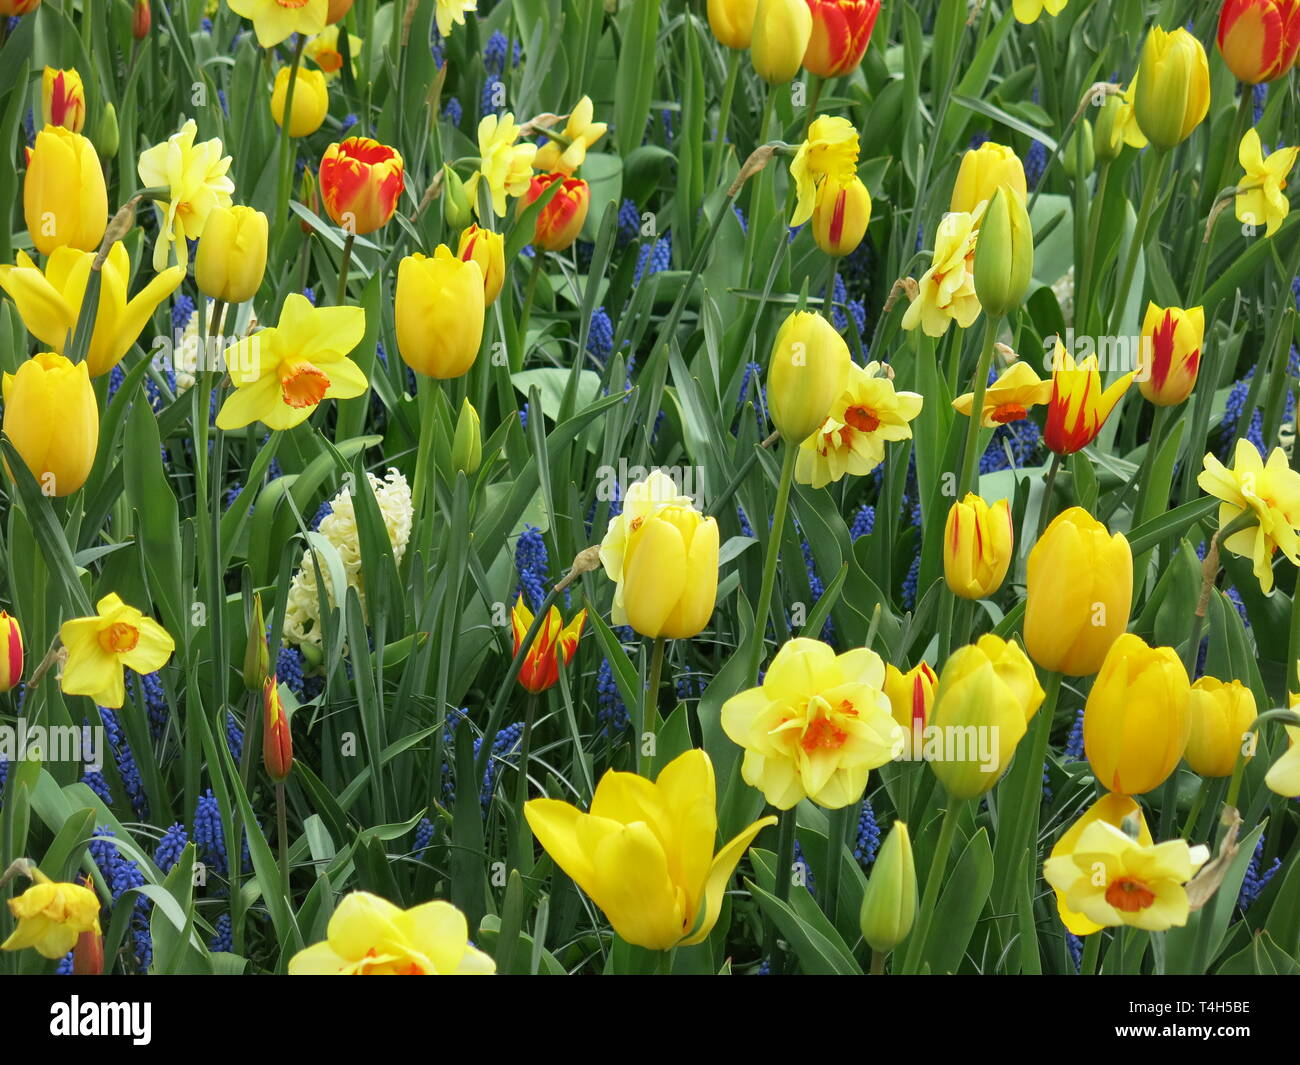 A mass of spring bulbs at the Keukenhof flower festival: yellow tulips and daffodils underplanted with blue muscari; April 2019 Stock Photo